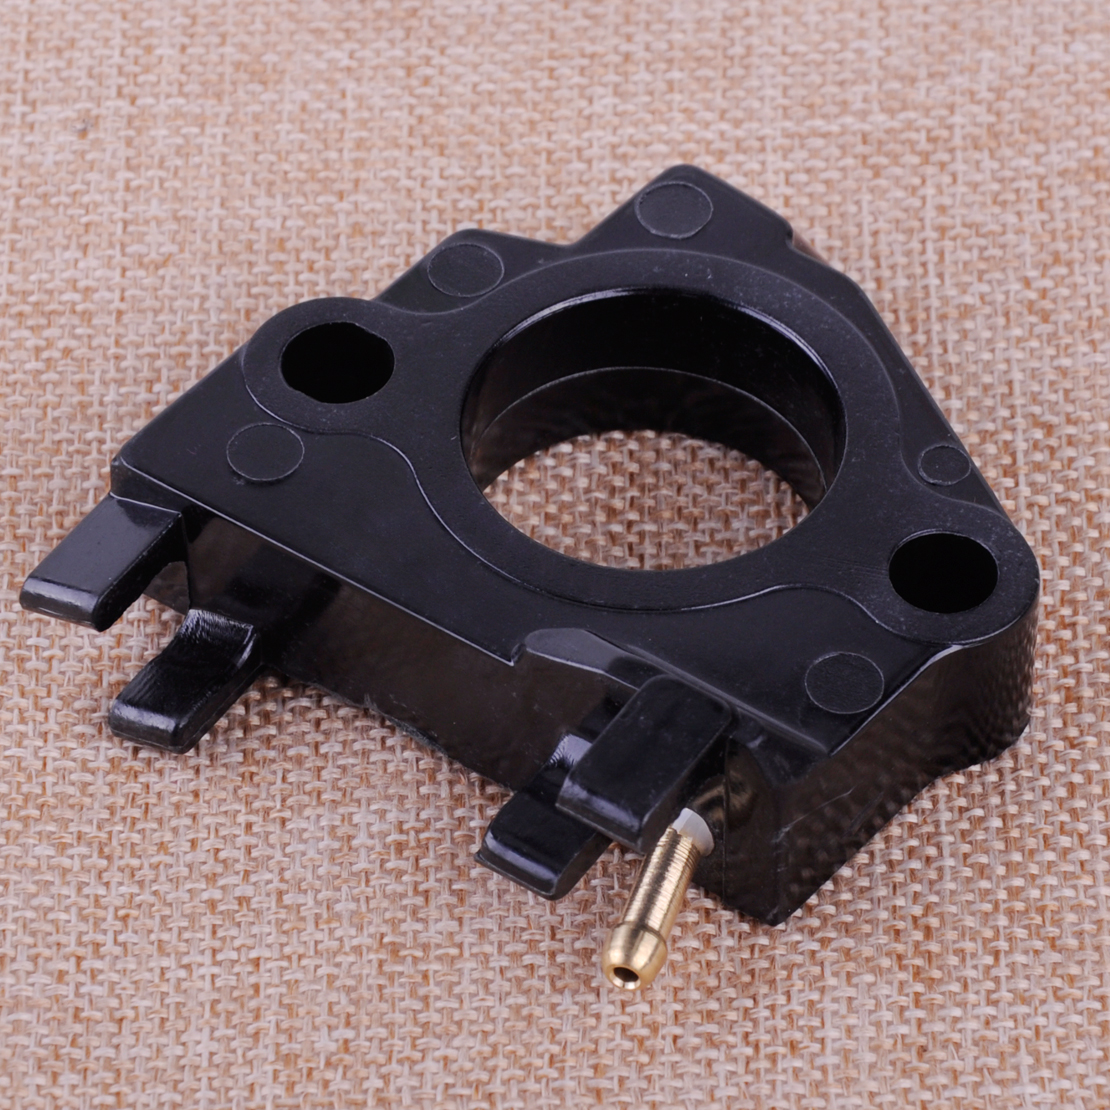 LETAOSK New Black Carb Carburetor Insulator Spacer Fit For Honda GX340 GX390 11Hp 13Hp